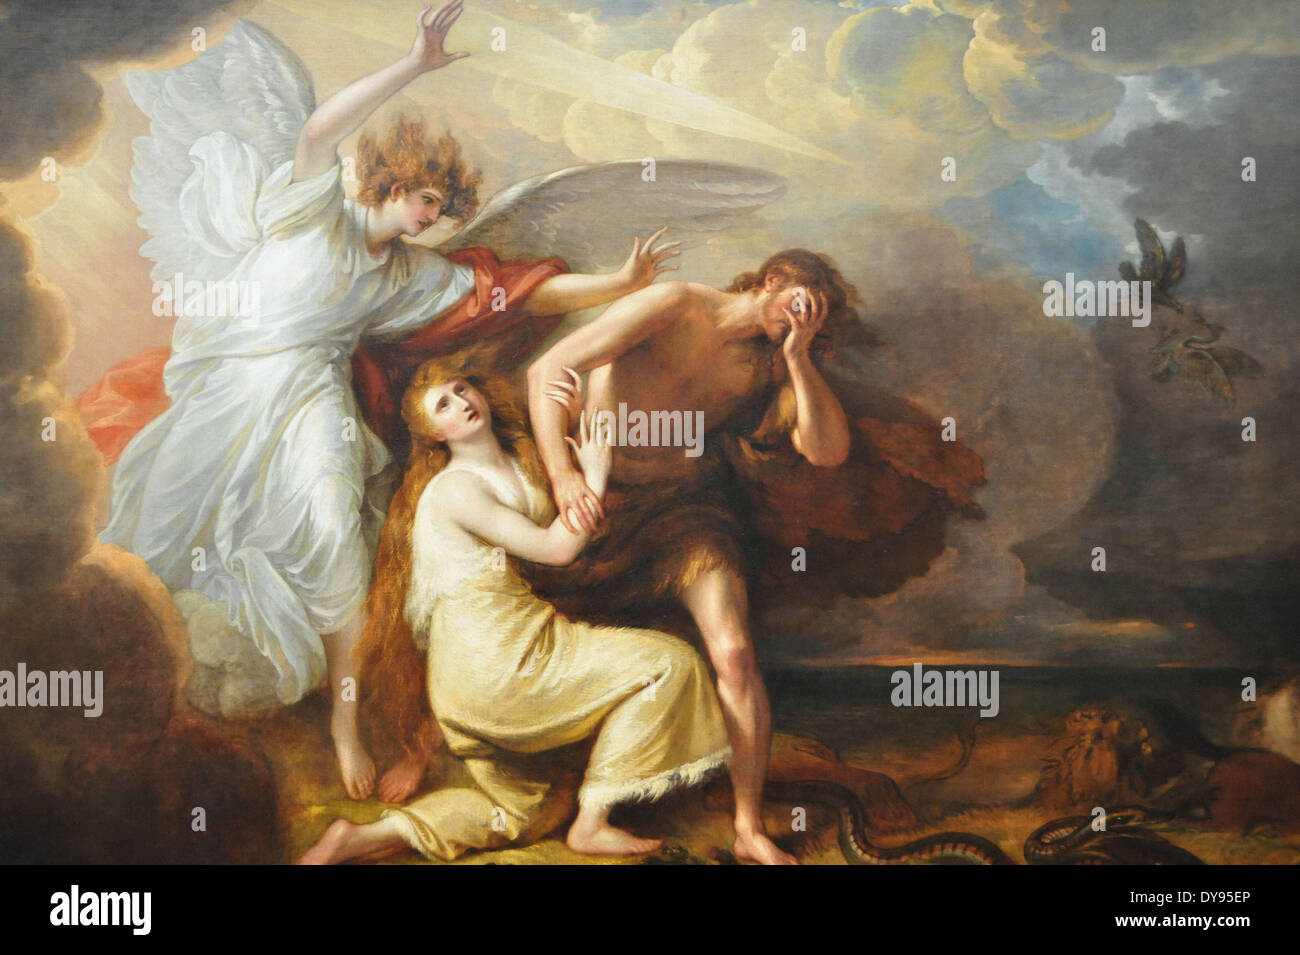 Benjamin West The Expulsion of Adam and Eve from Paradise - Stock Image